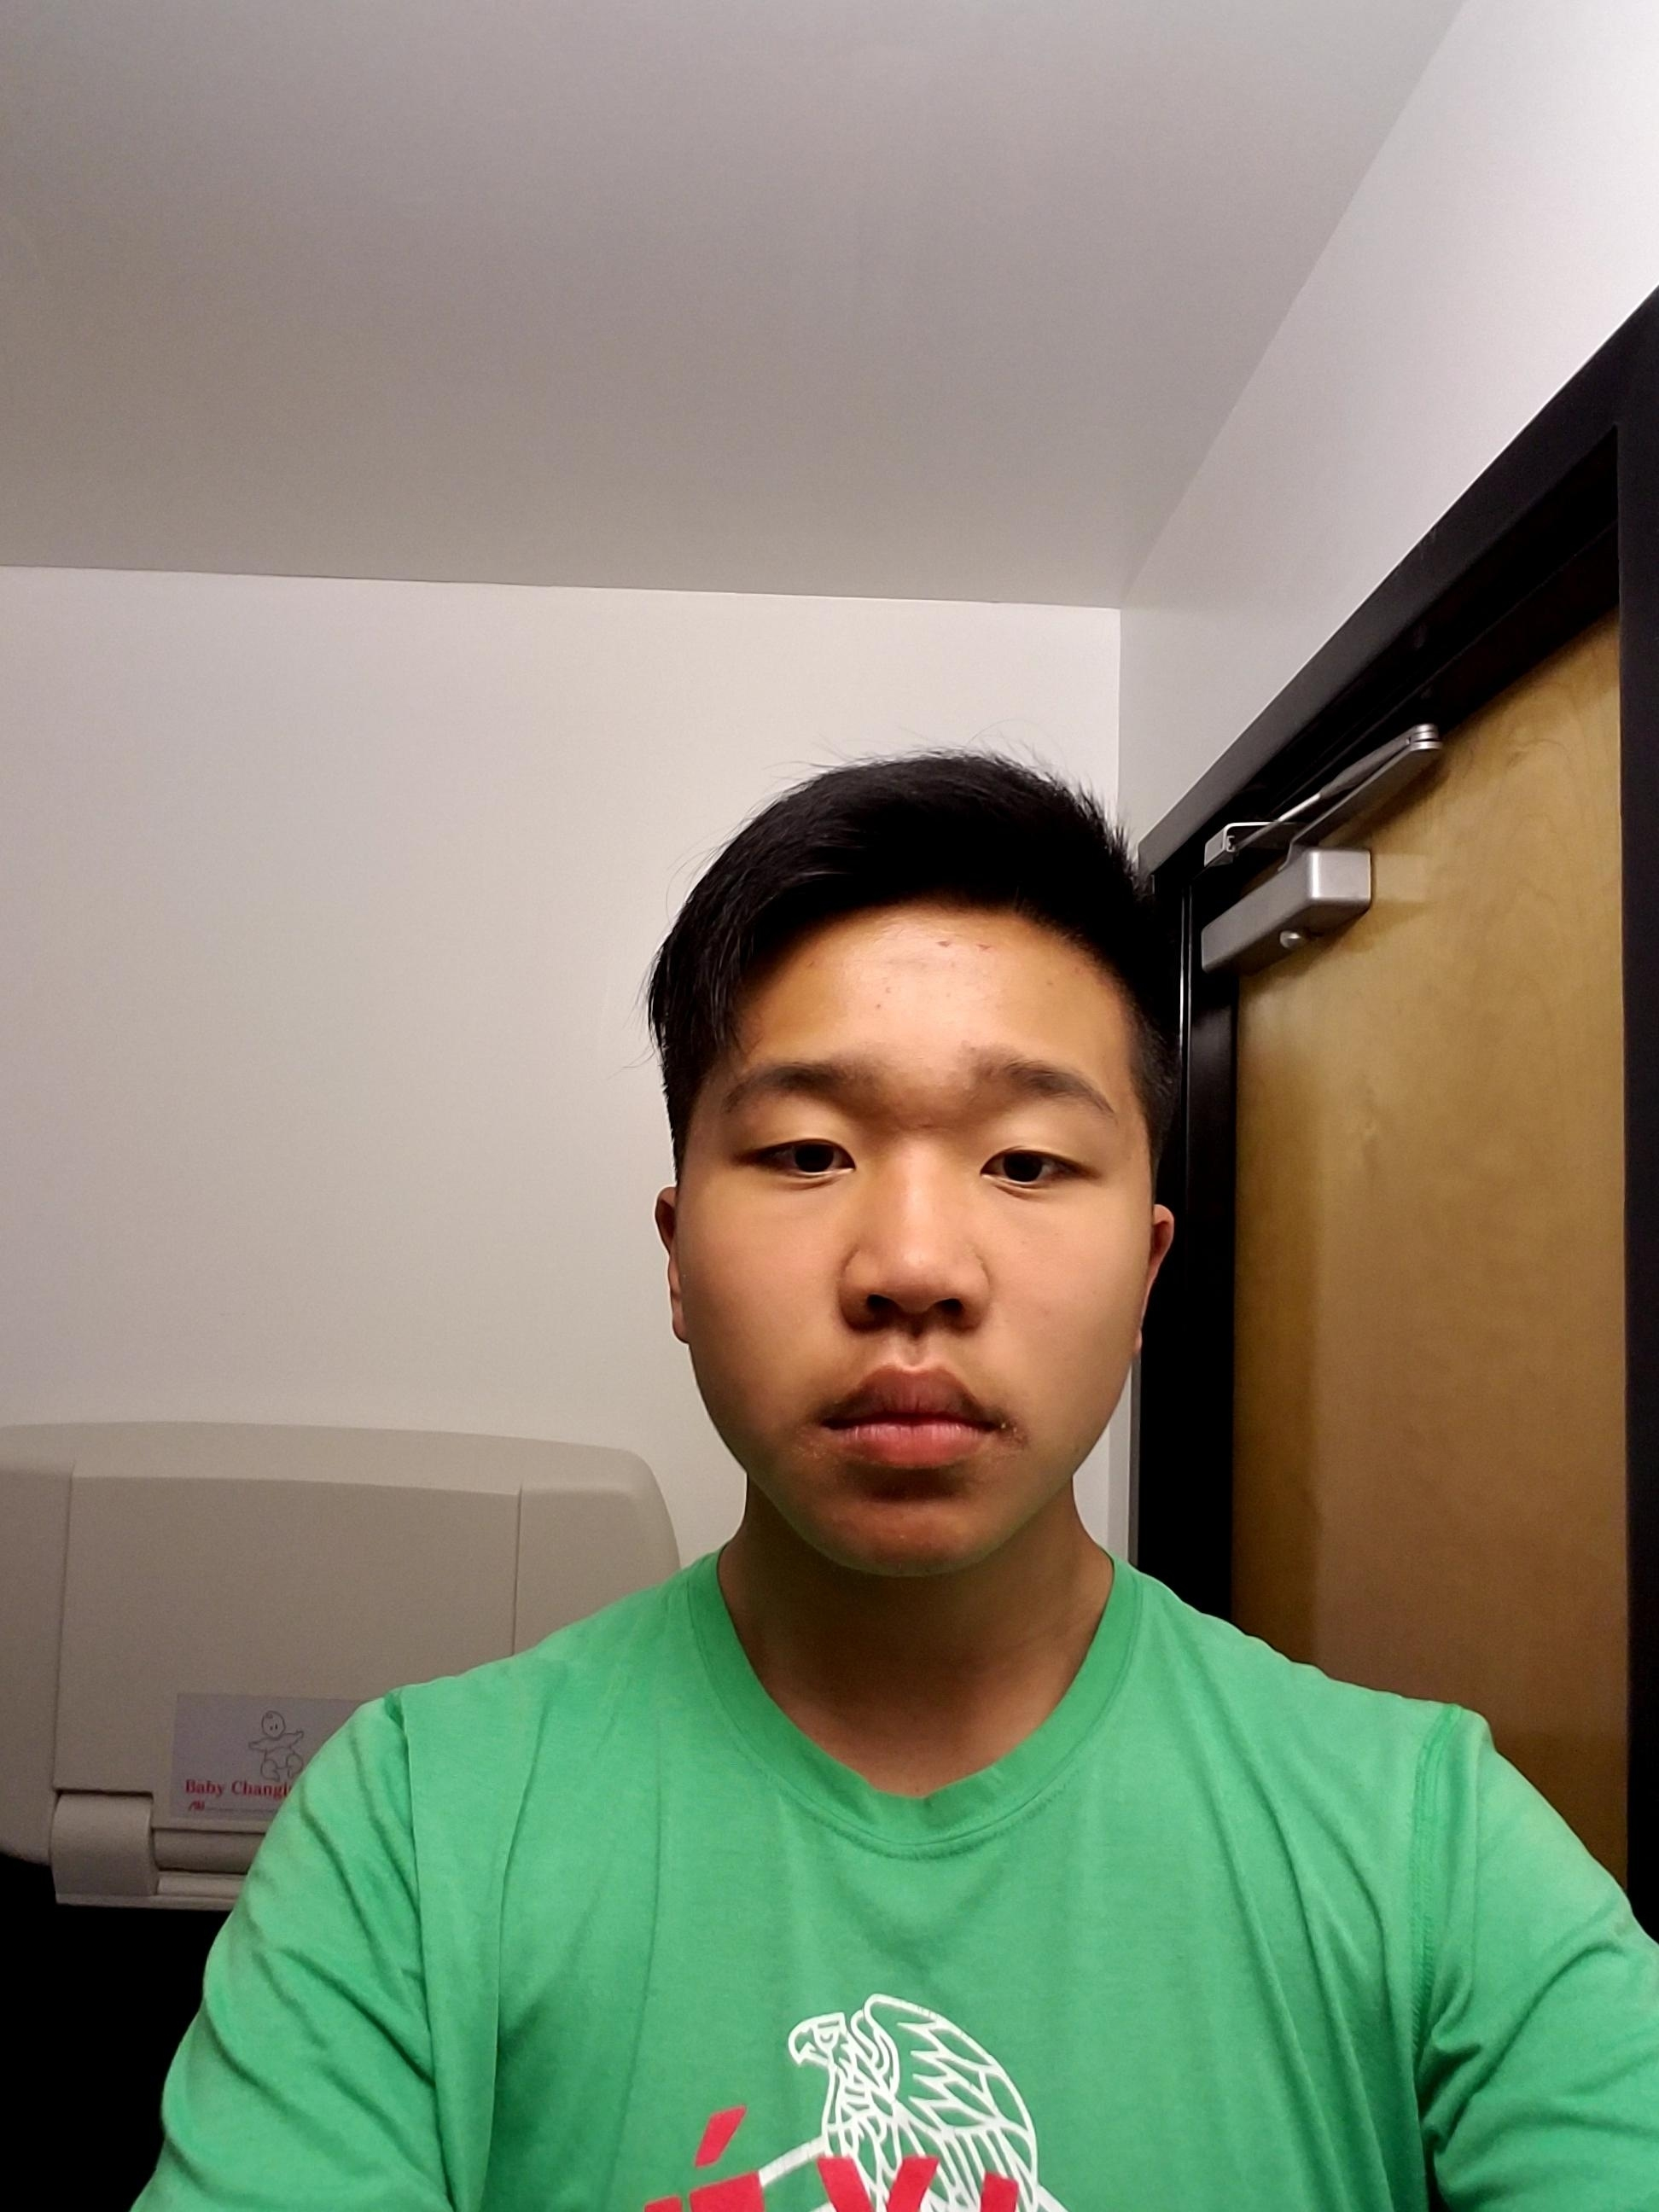 I'm An Asian Male Looking For Some New Hair Ideas. Also Need Advice with Asian Male Hairstyles Reddit